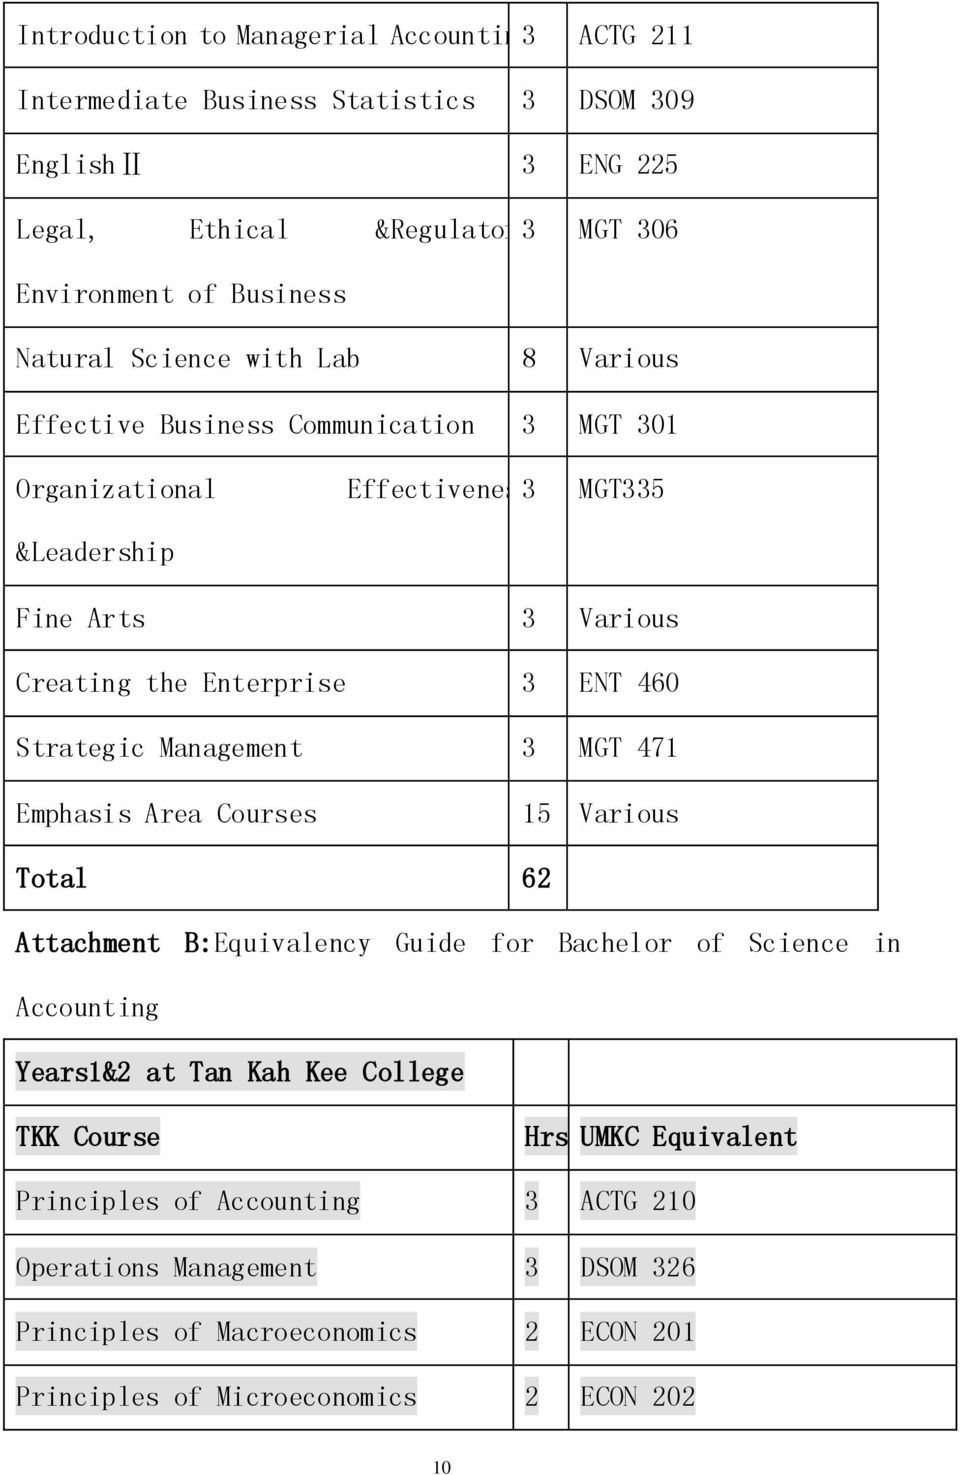 460 Strategic Management 3 MGT 471 Emphasis Area Courses 15 Various Total 62 Attachment B:Equivalency Guide for Bachelor of Science in Accounting Years1&2 at Tan Kah Kee College